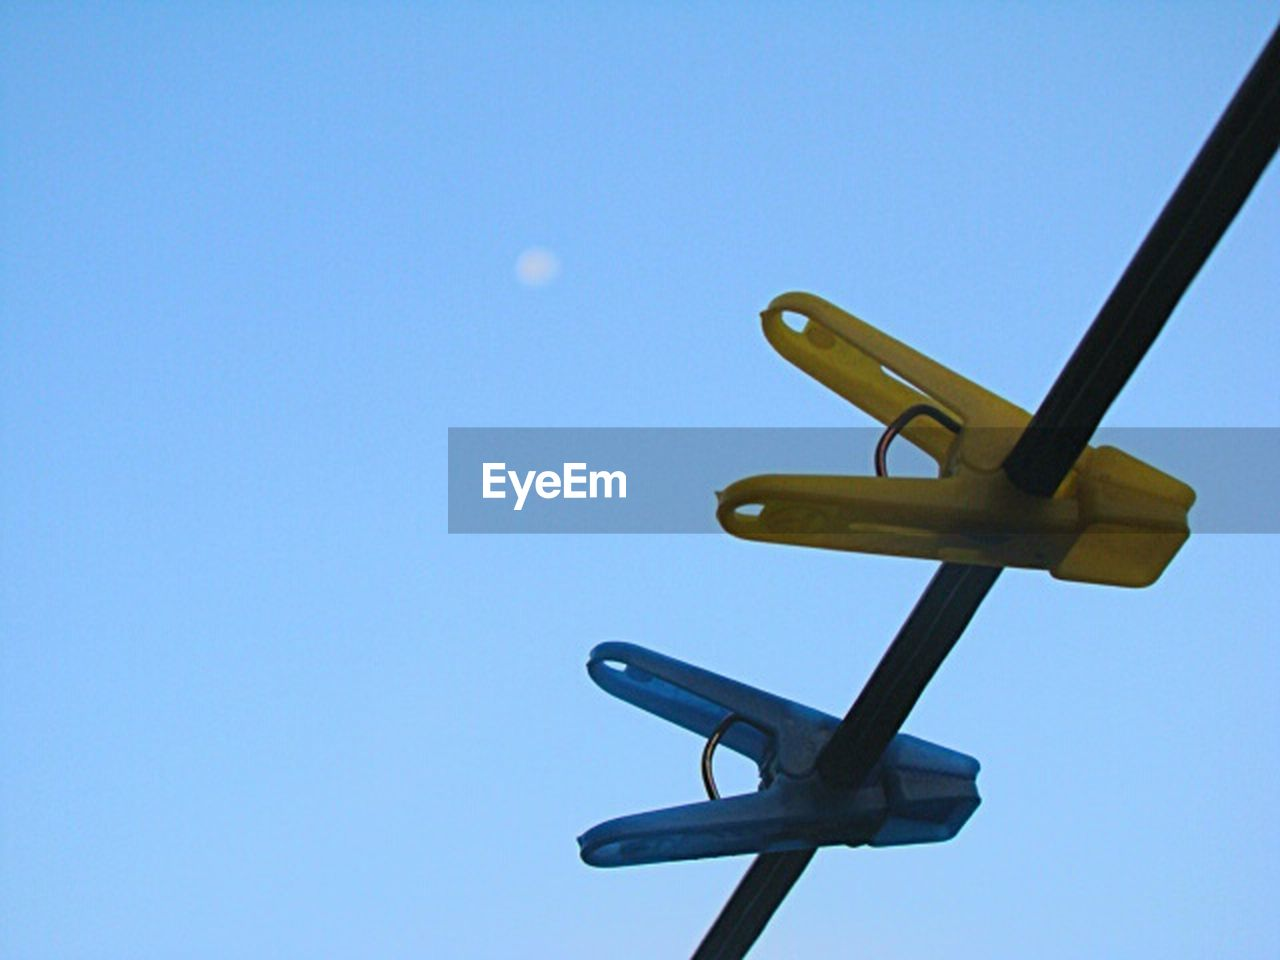 clear sky, blue, no people, low angle view, sky, day, airplane, model airplane, outdoors, close-up